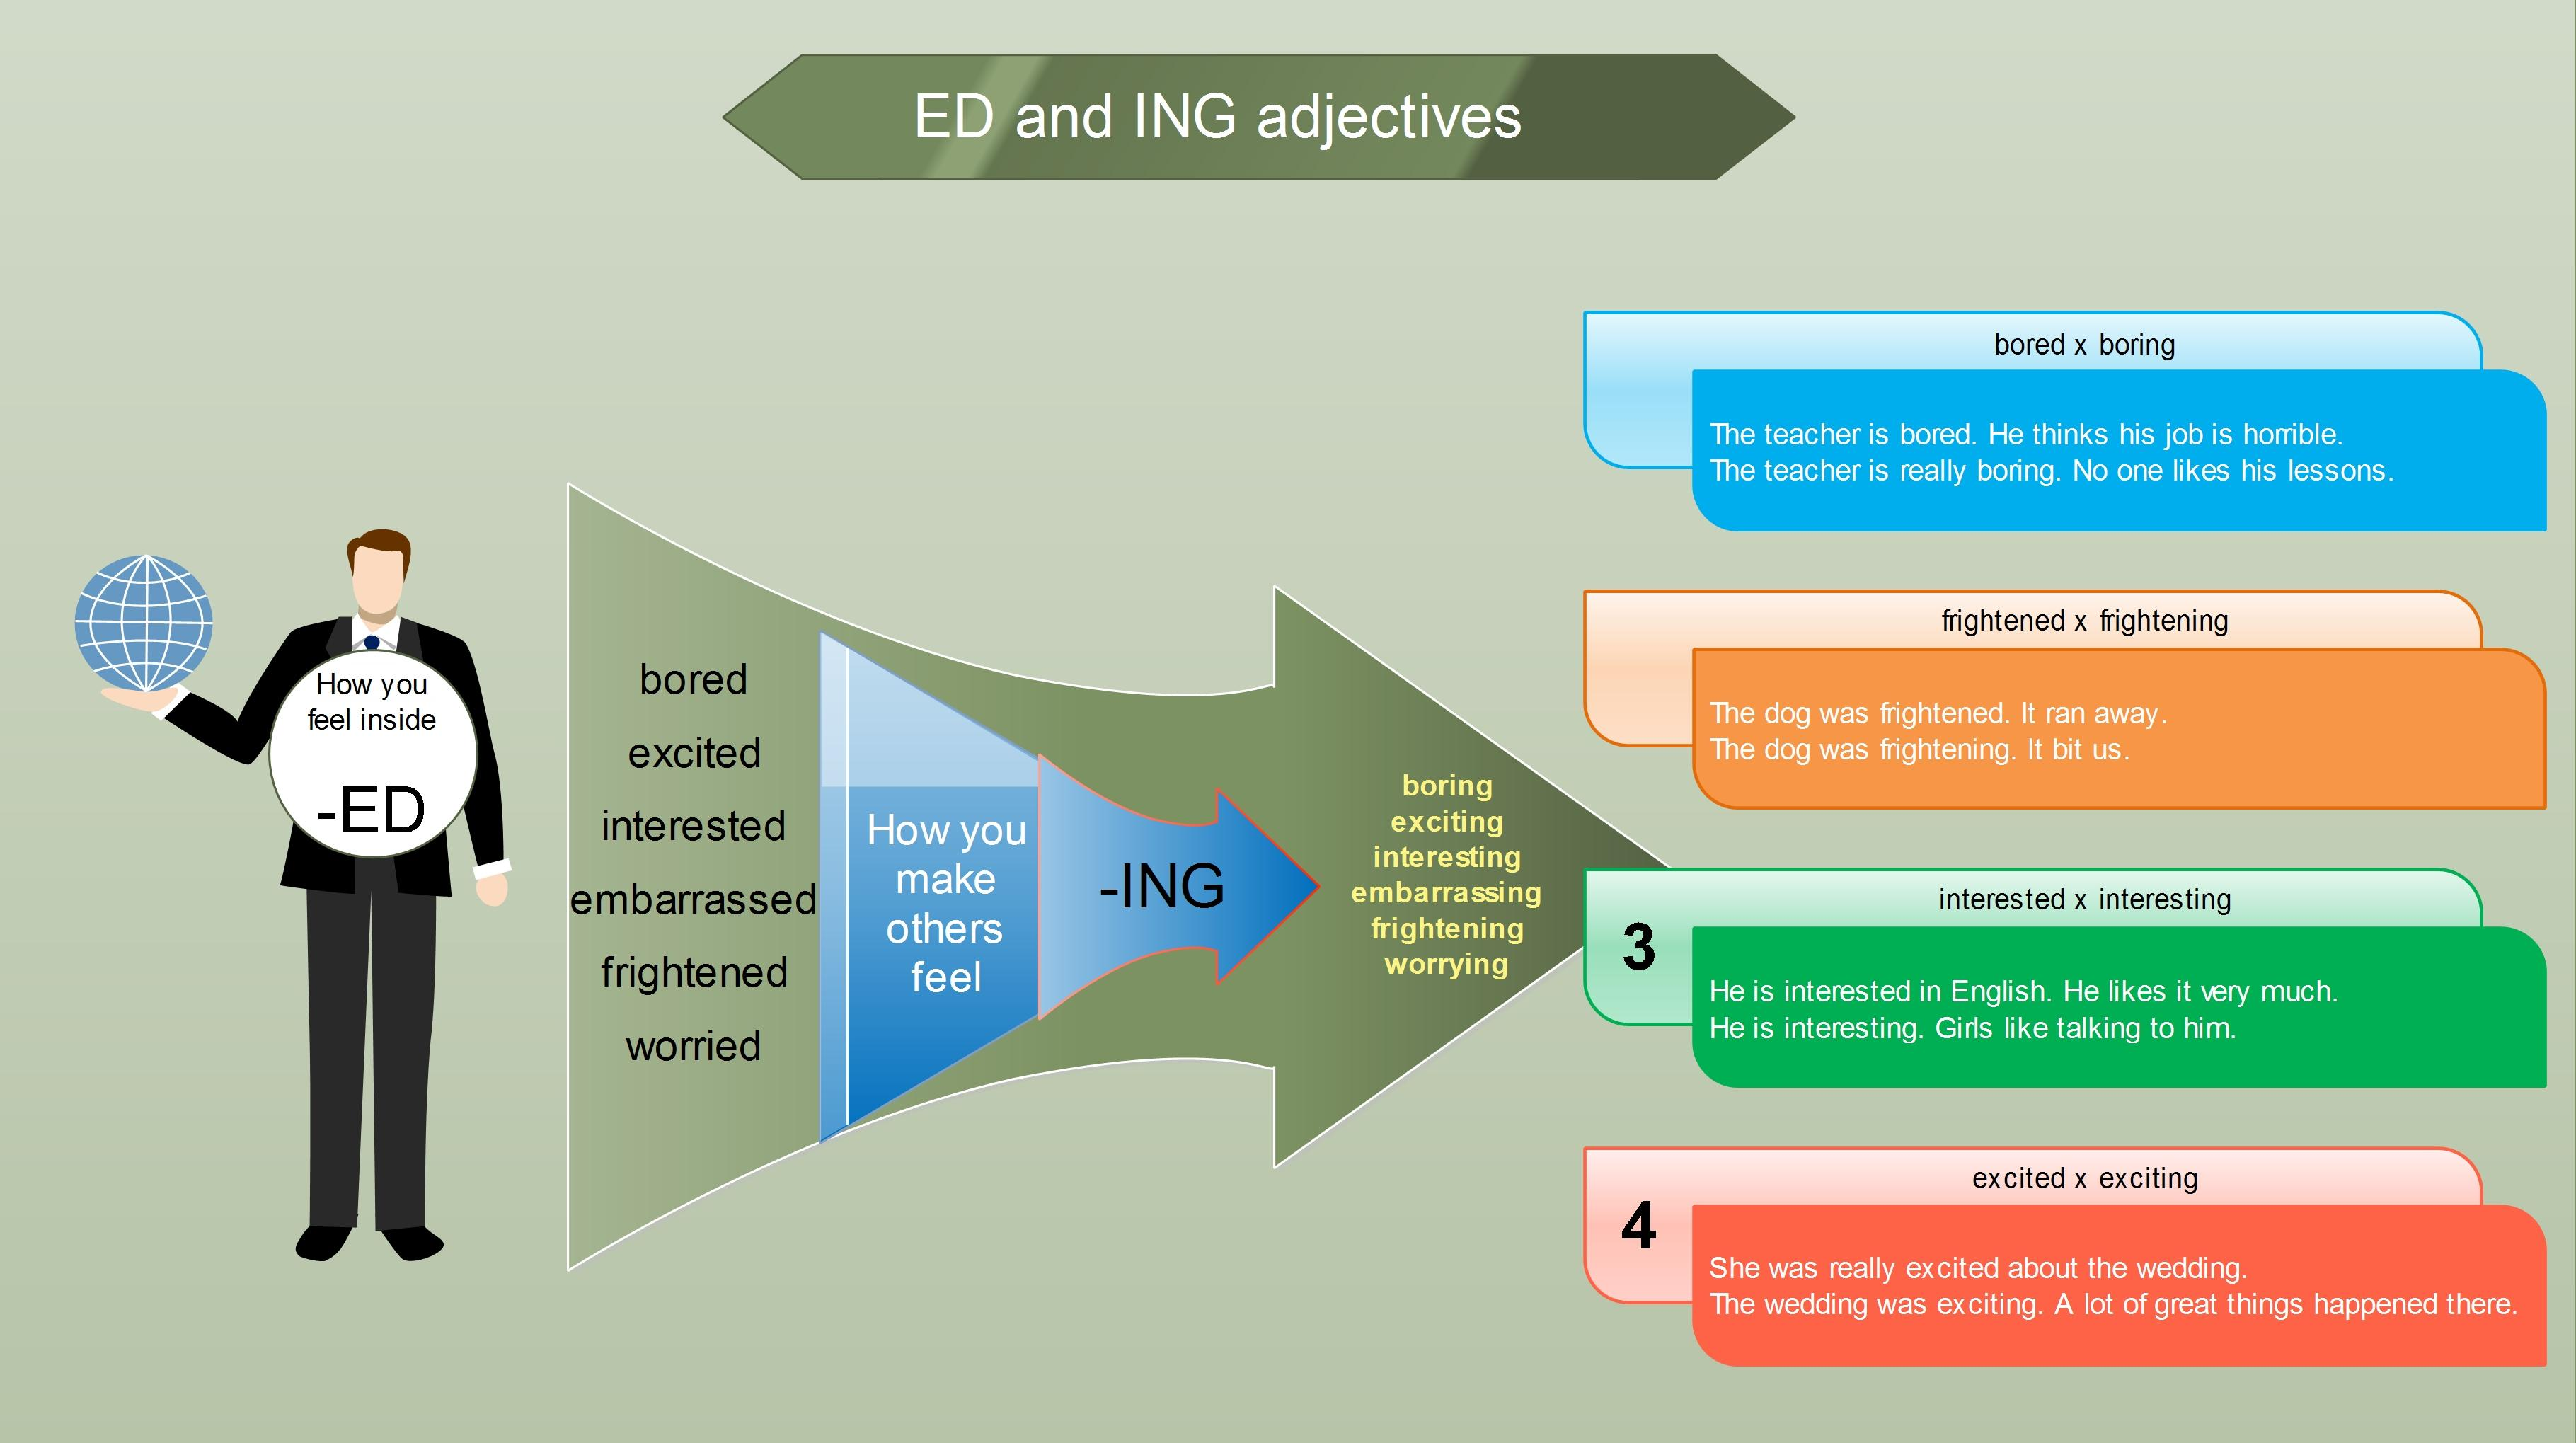 Adjectives ending with ed and ing - mind map